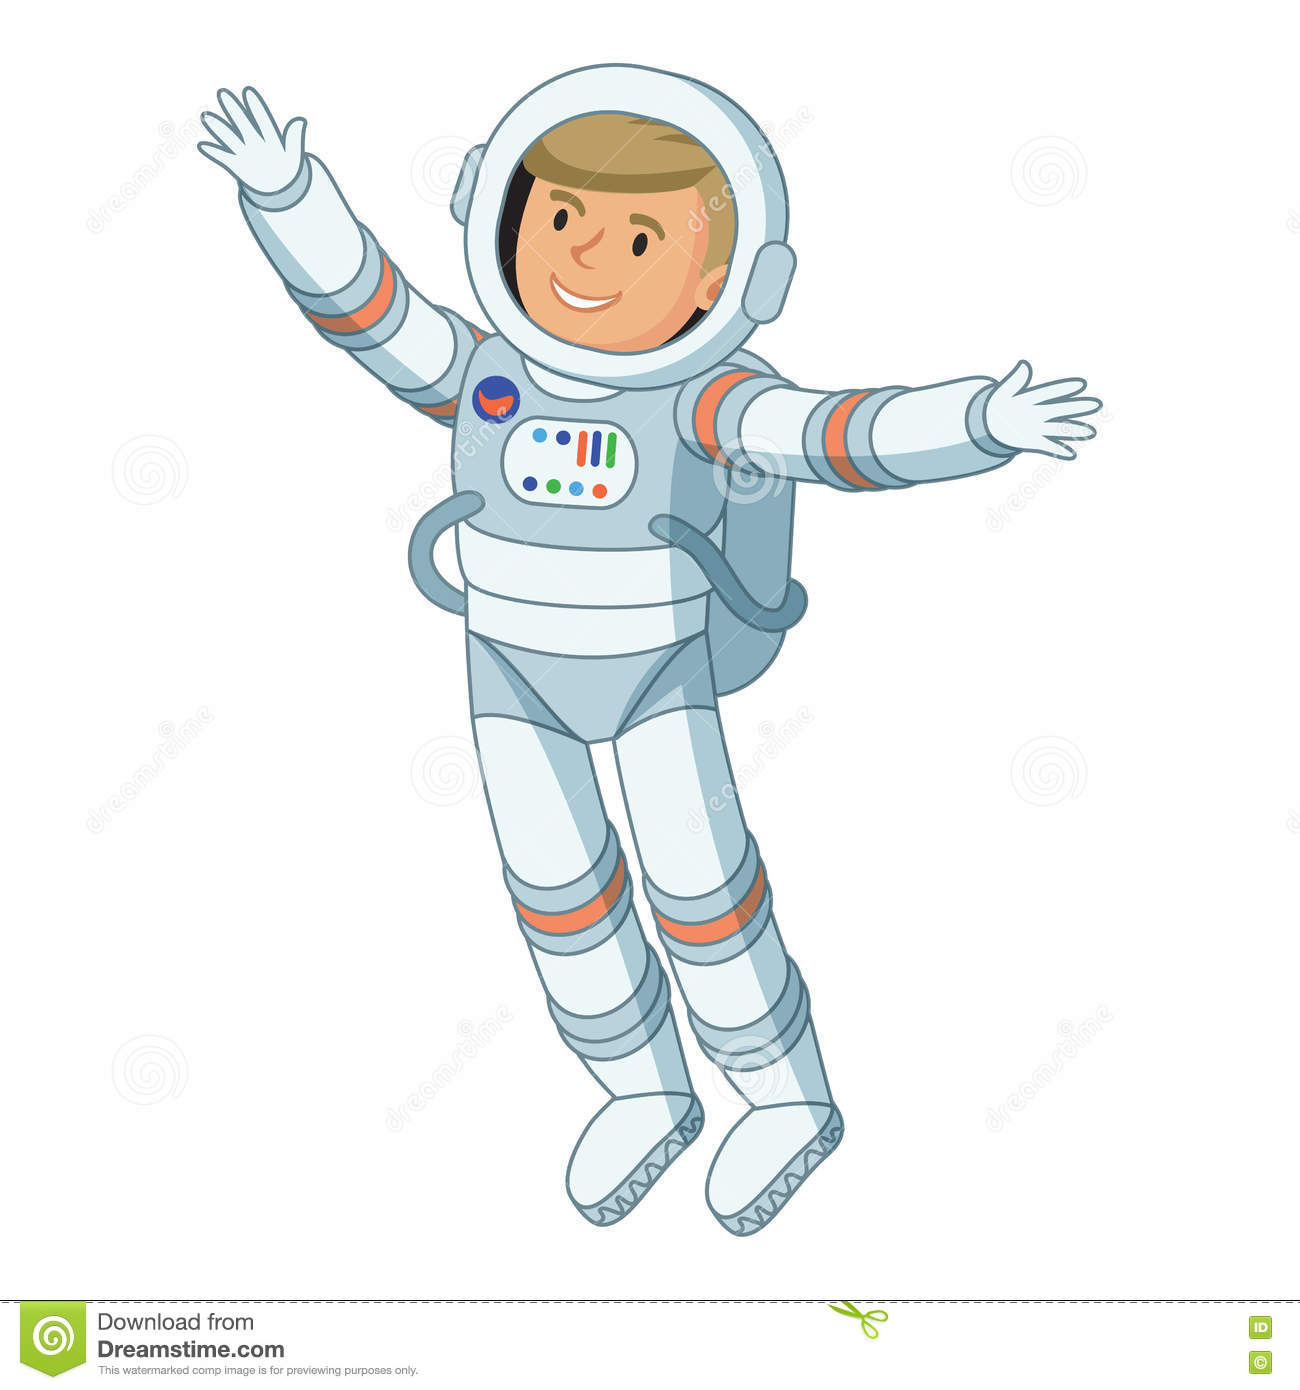 astronaut in outer space - photo #30